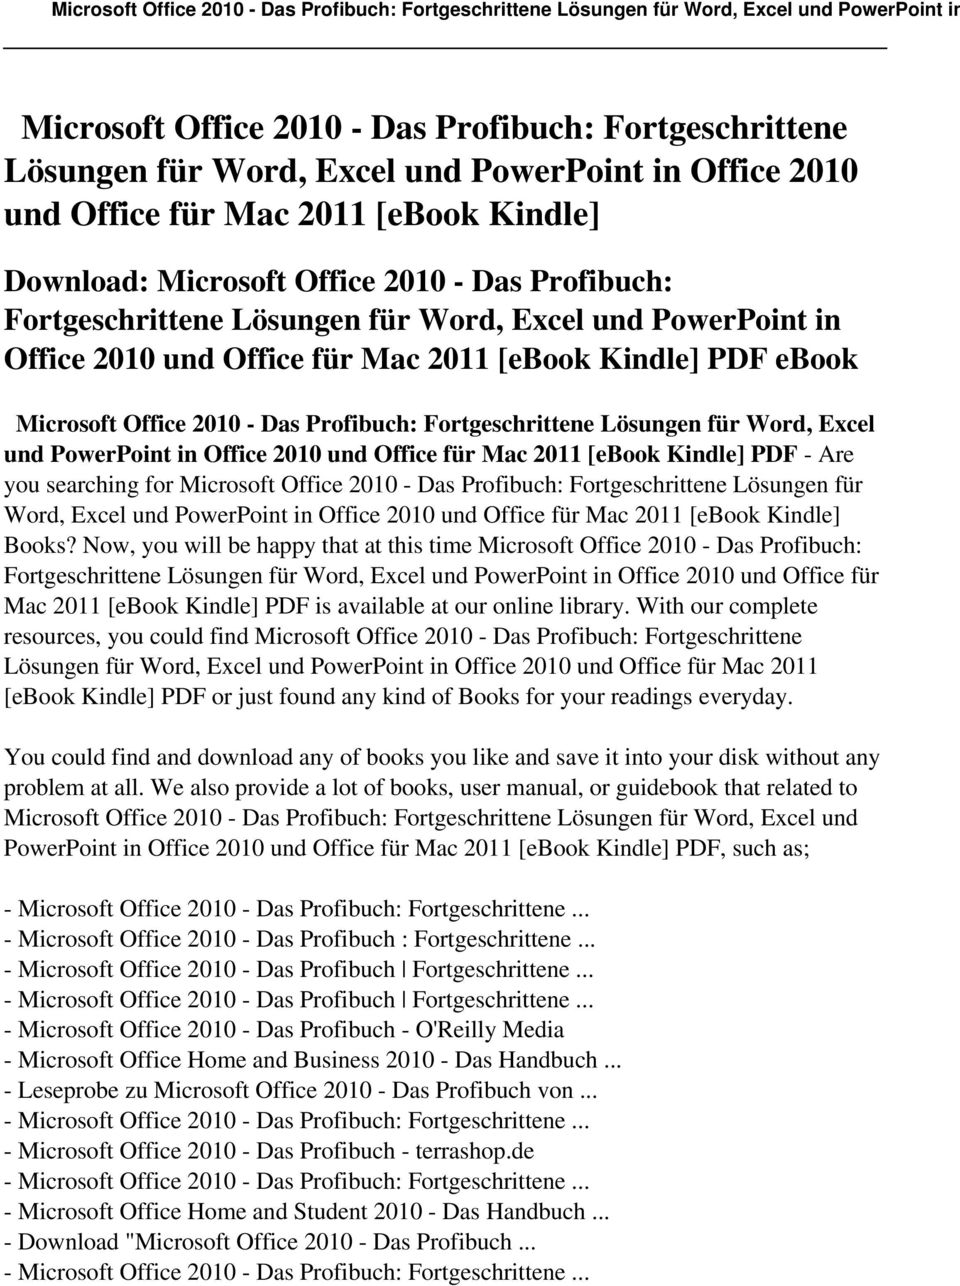 Excel und PowerPoint in Office 2010 und Office für Mac 2011 [ebook Kindle] PDF - Are you searching for Microsoft Office 2010 - Das Profibuch: Fortgeschrittene Lösungen für Word, Excel und PowerPoint